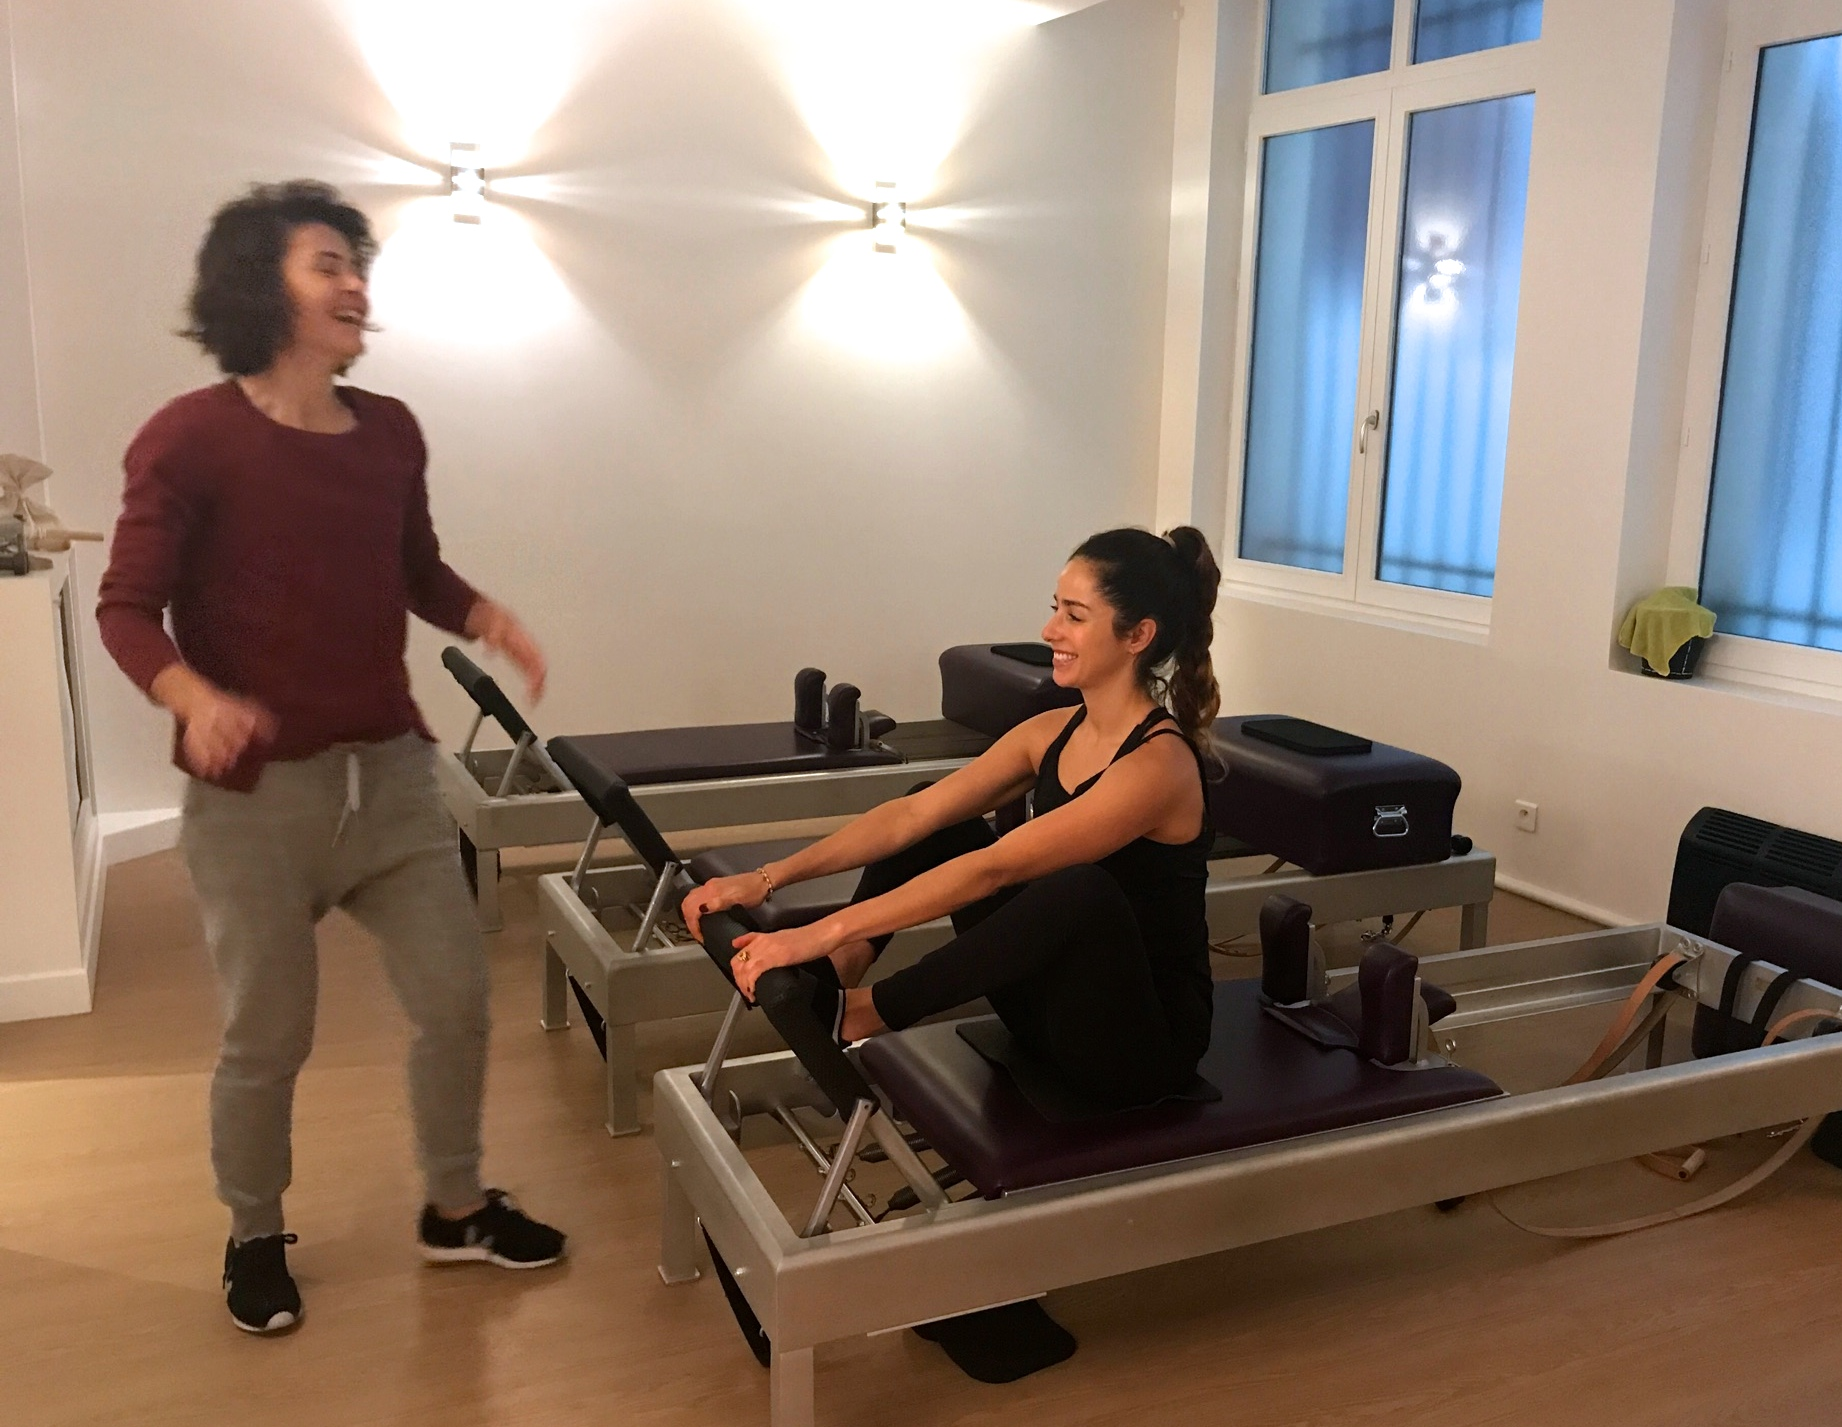 Pilates Centre 5 Paris santamila.JPG 4